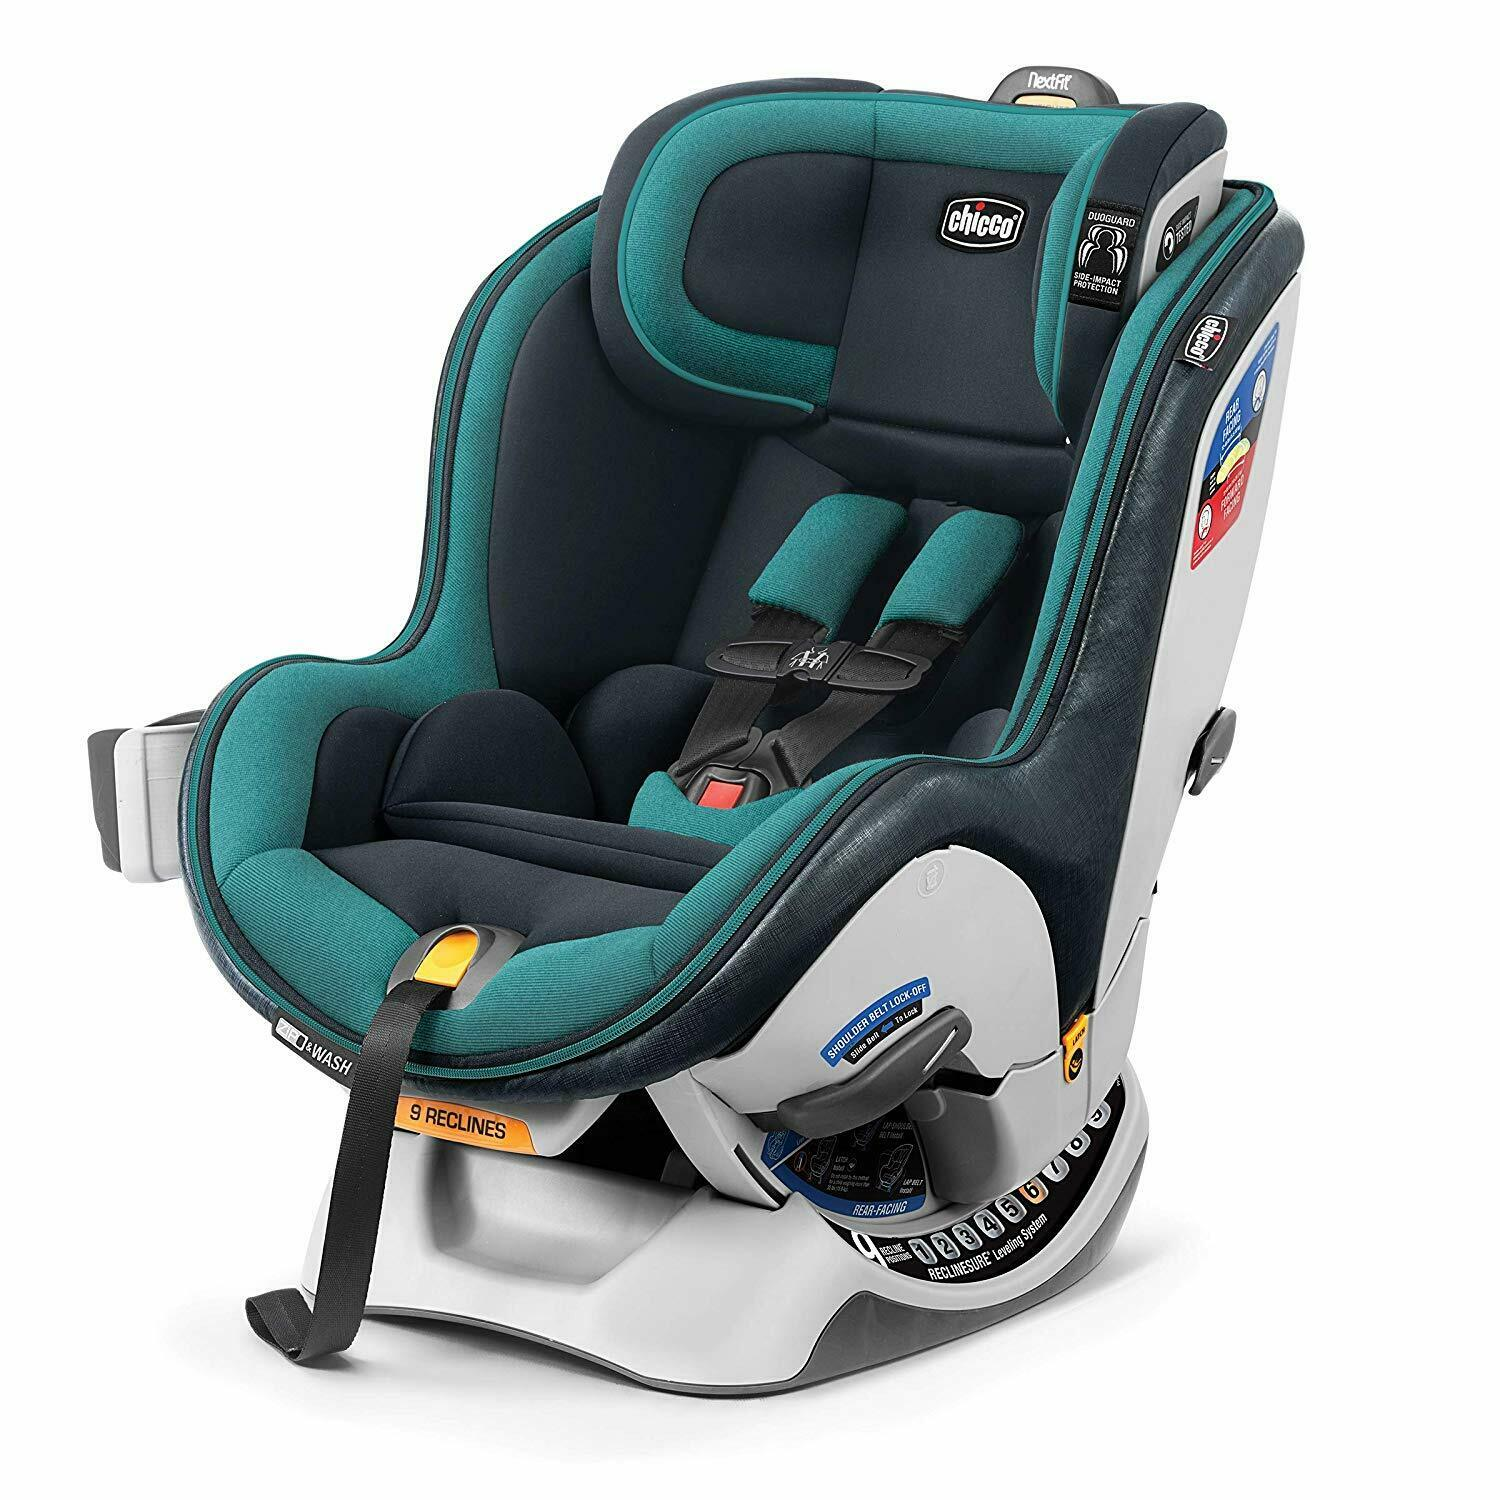 New Chicco NextFit Zip Convertible Car Seat in Juniper